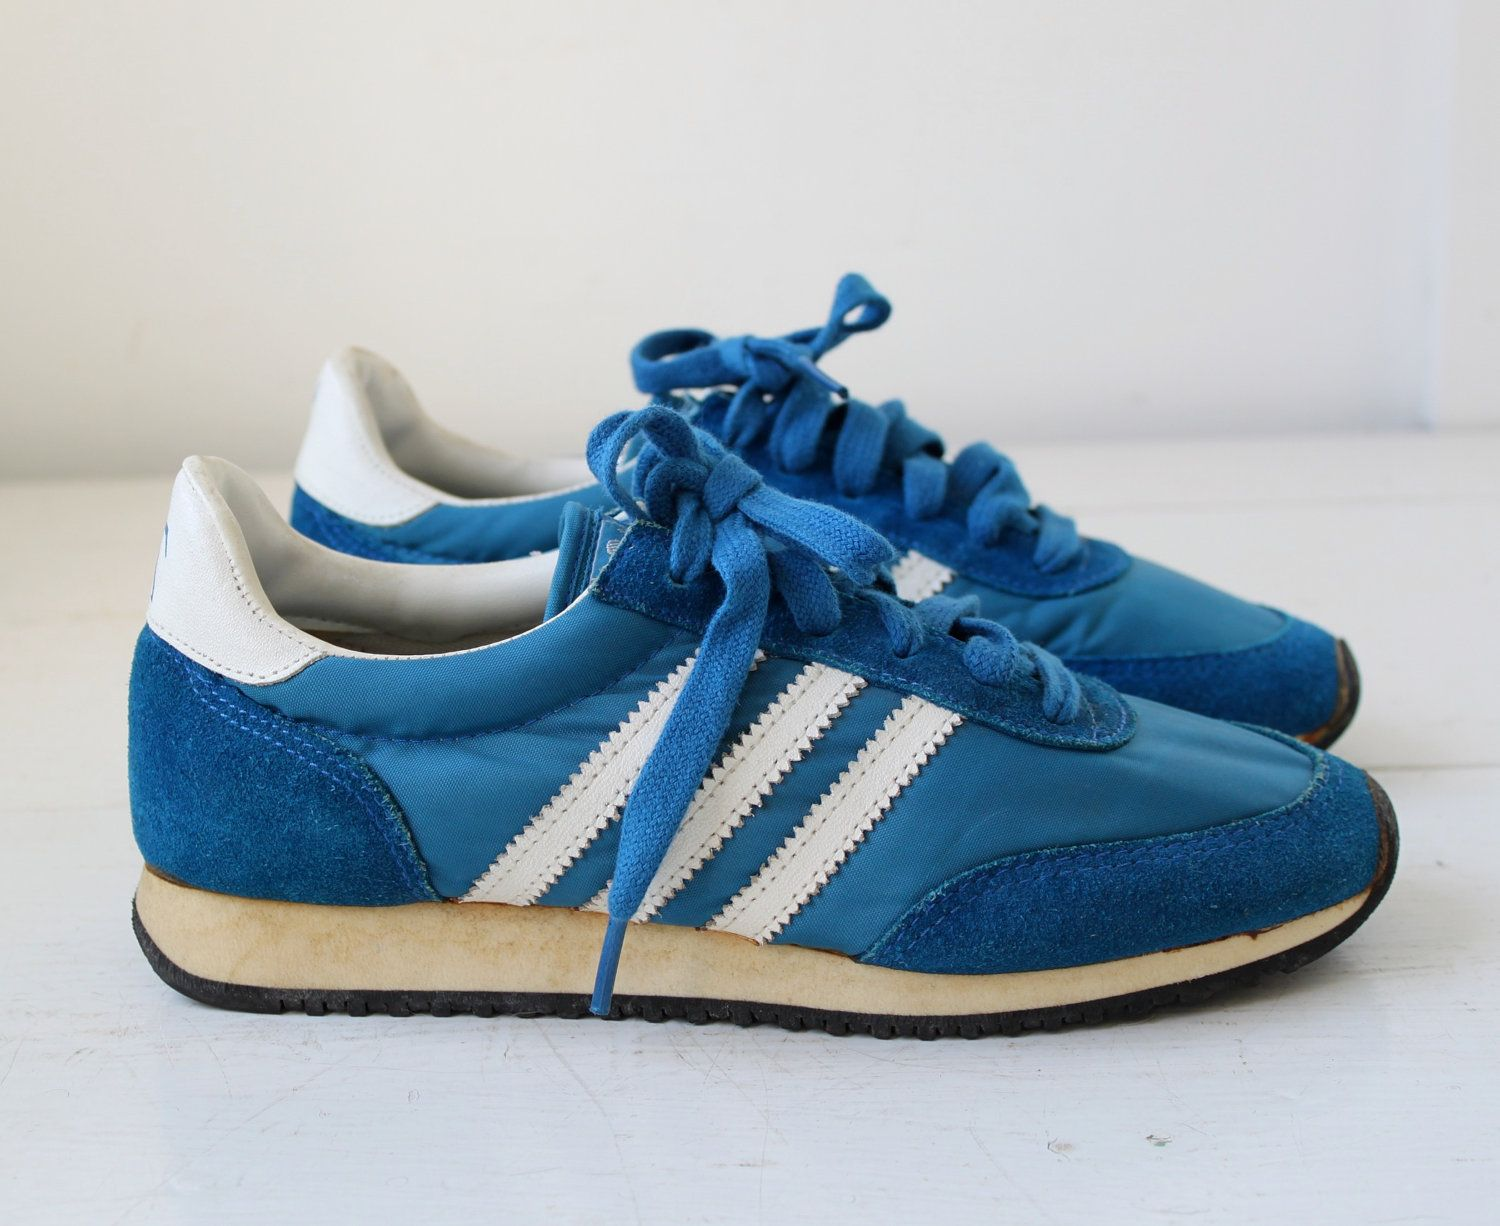 vintage 1970s blue sneakers. JC Penney 3 striped. Retro athletic runners.  Women size 6.